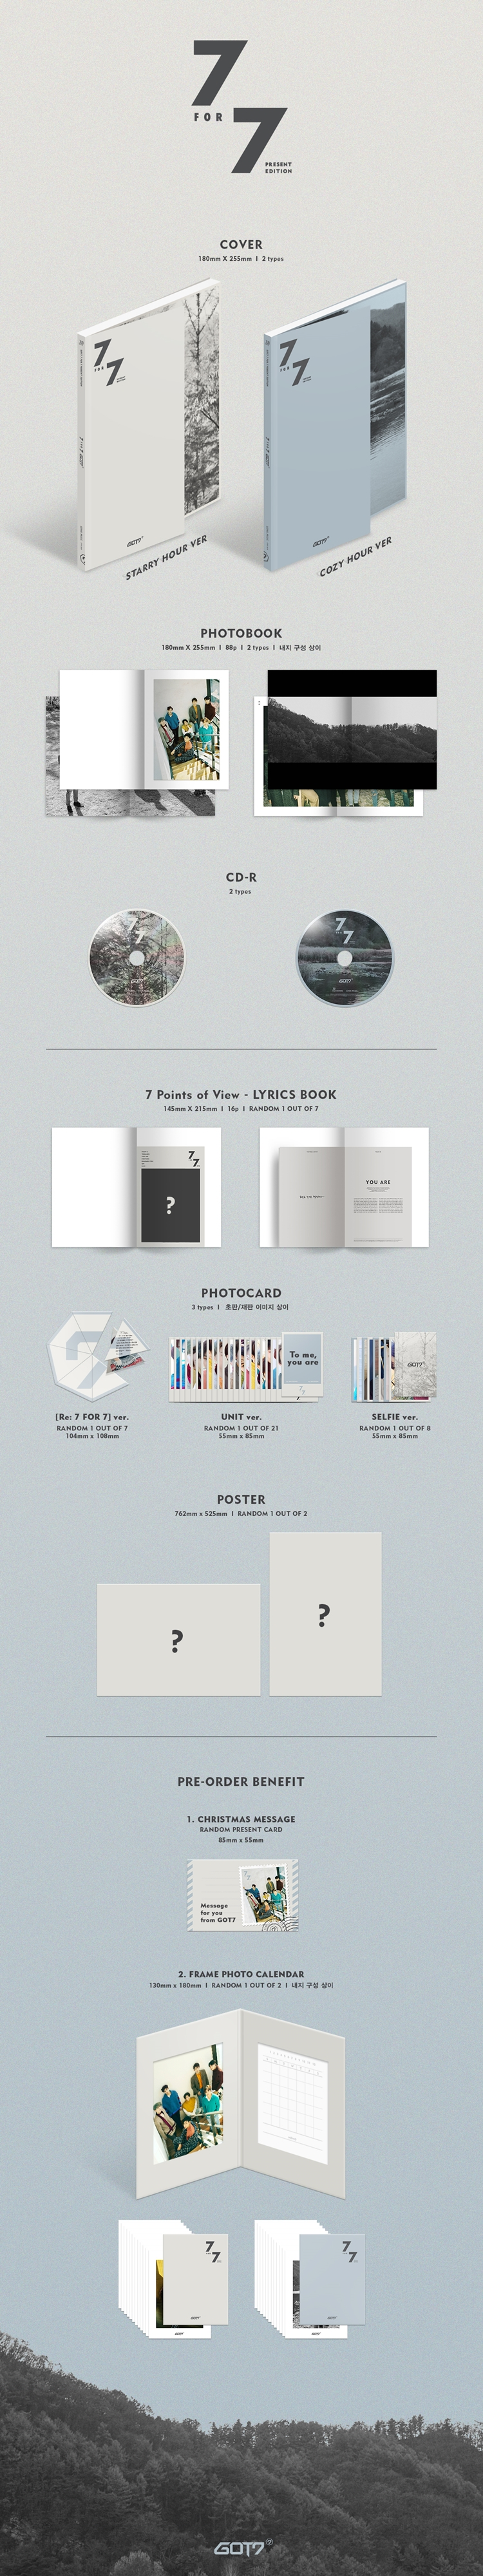 Image result for got7 7 for 7 present edition